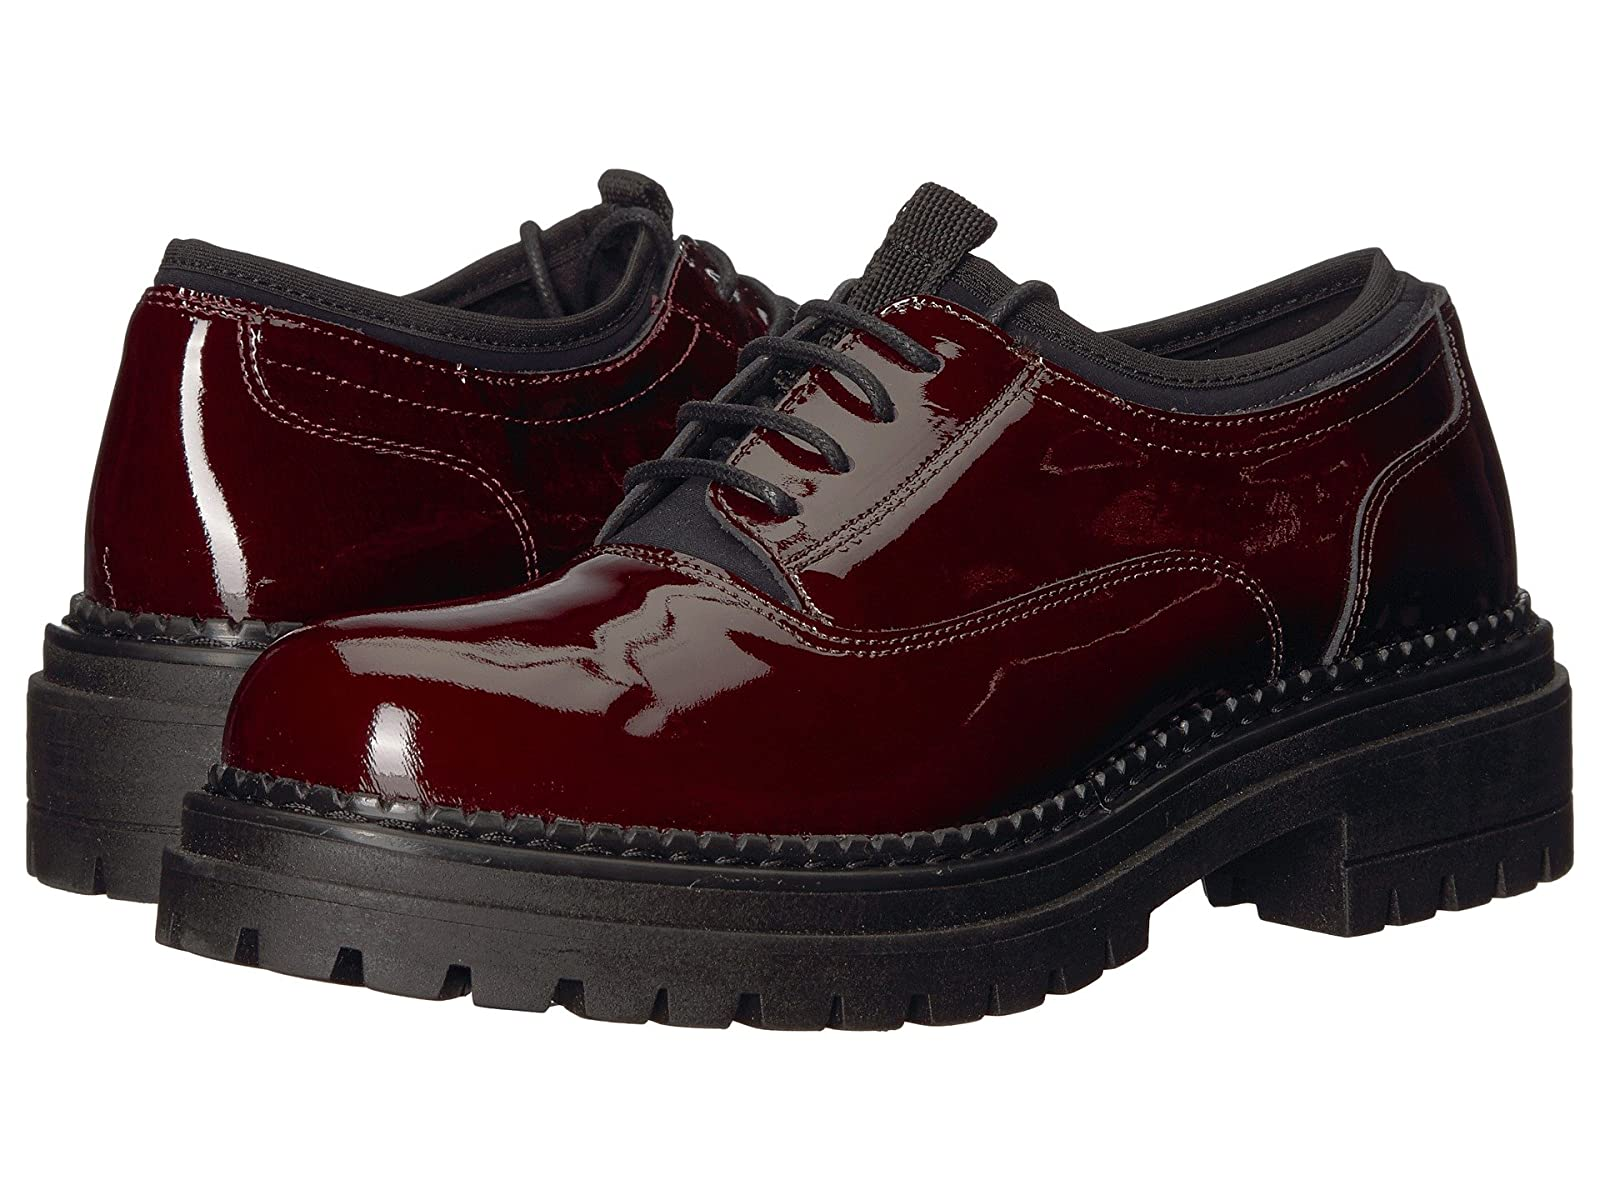 Shellys London Kemper oxfordCheap and distinctive eye-catching shoes